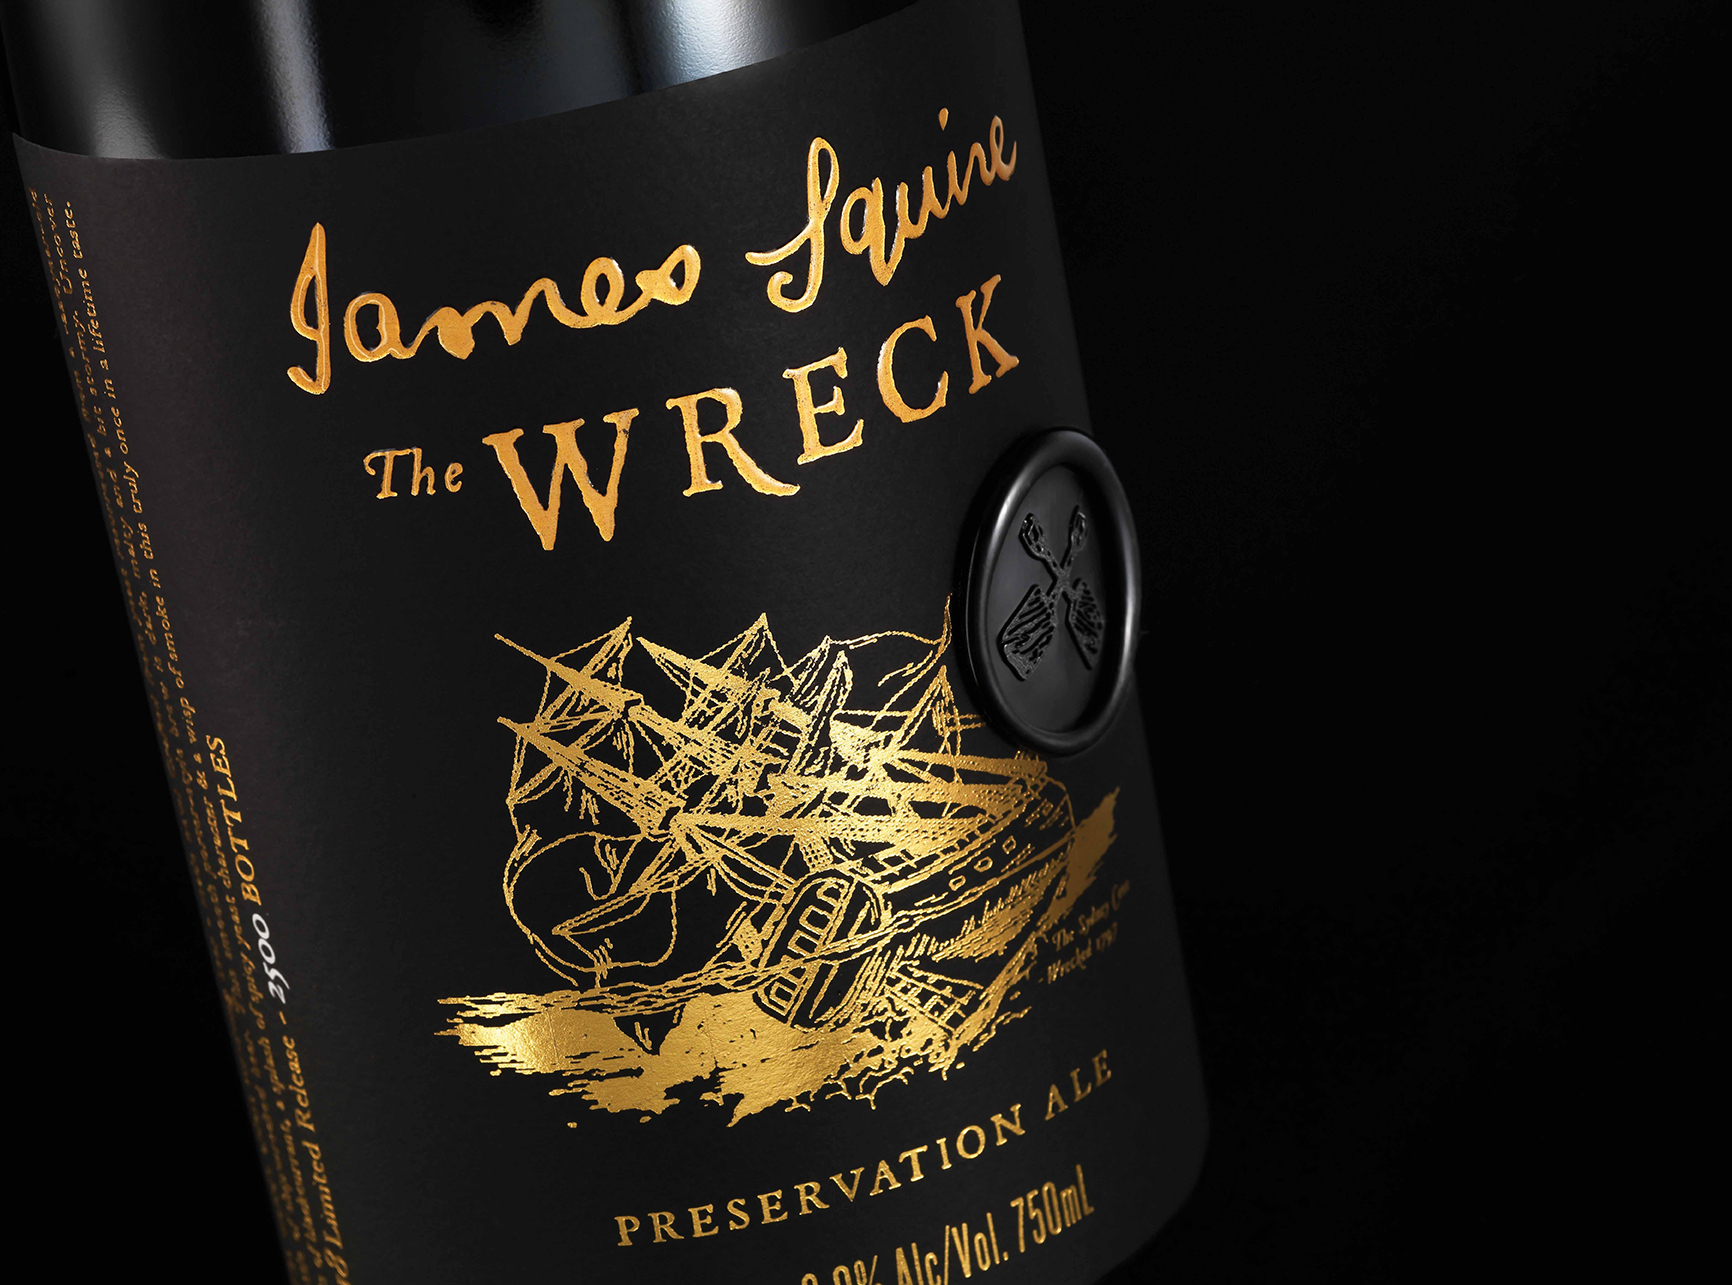 Energi Packaging Design Agency Specialists James Squire The Wreck Preservation Ale Beer Bottle Wax Seal Limited Release Closeup Label Design Product Photography